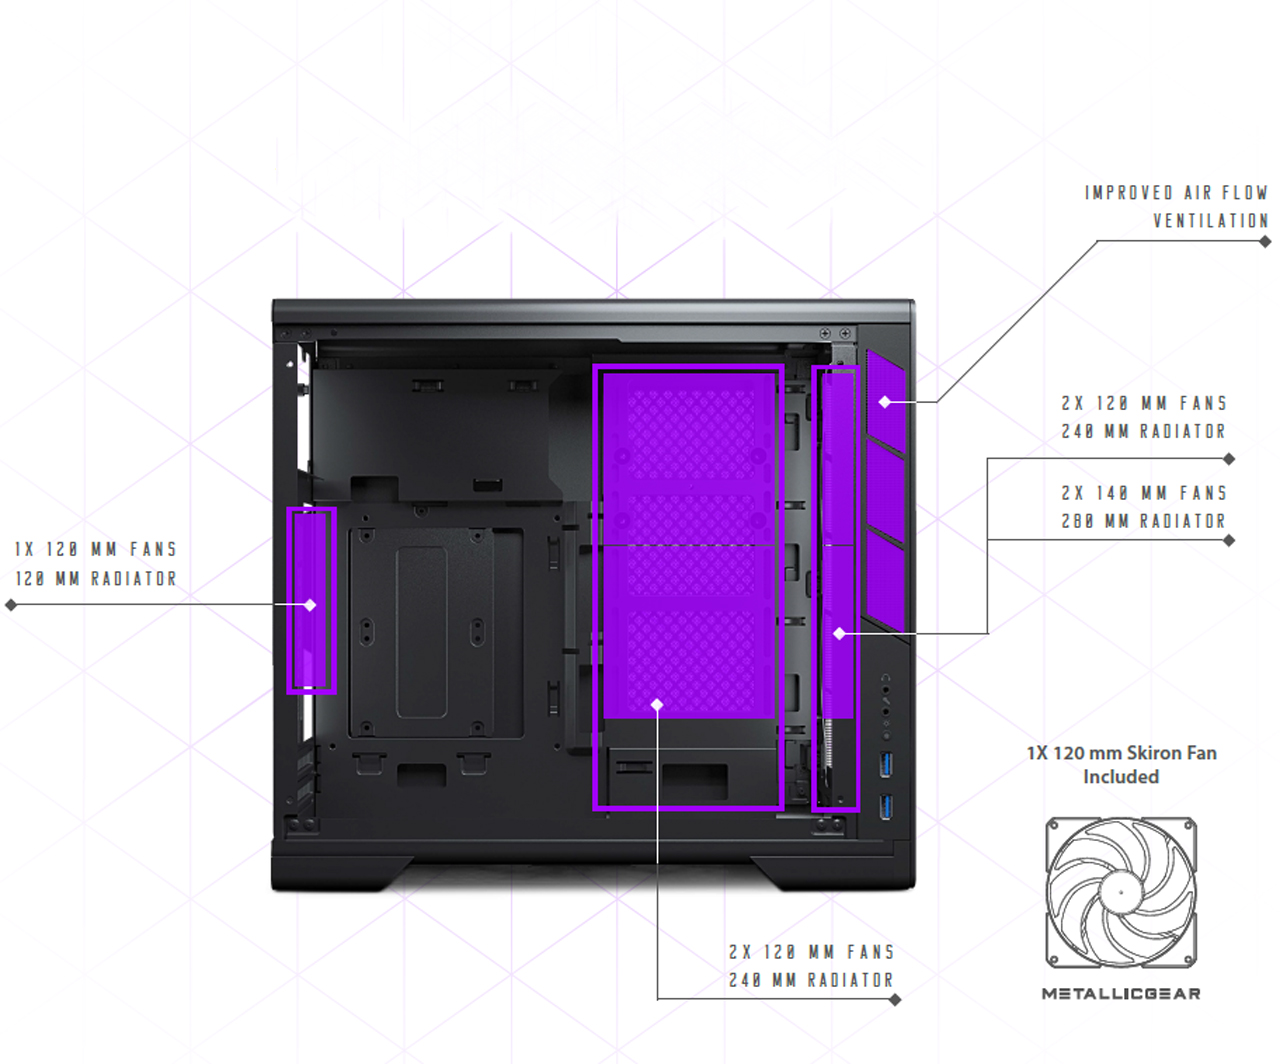 The MetallicGear NEO Mini V2 Fans Radiators installation location labeling and specifications